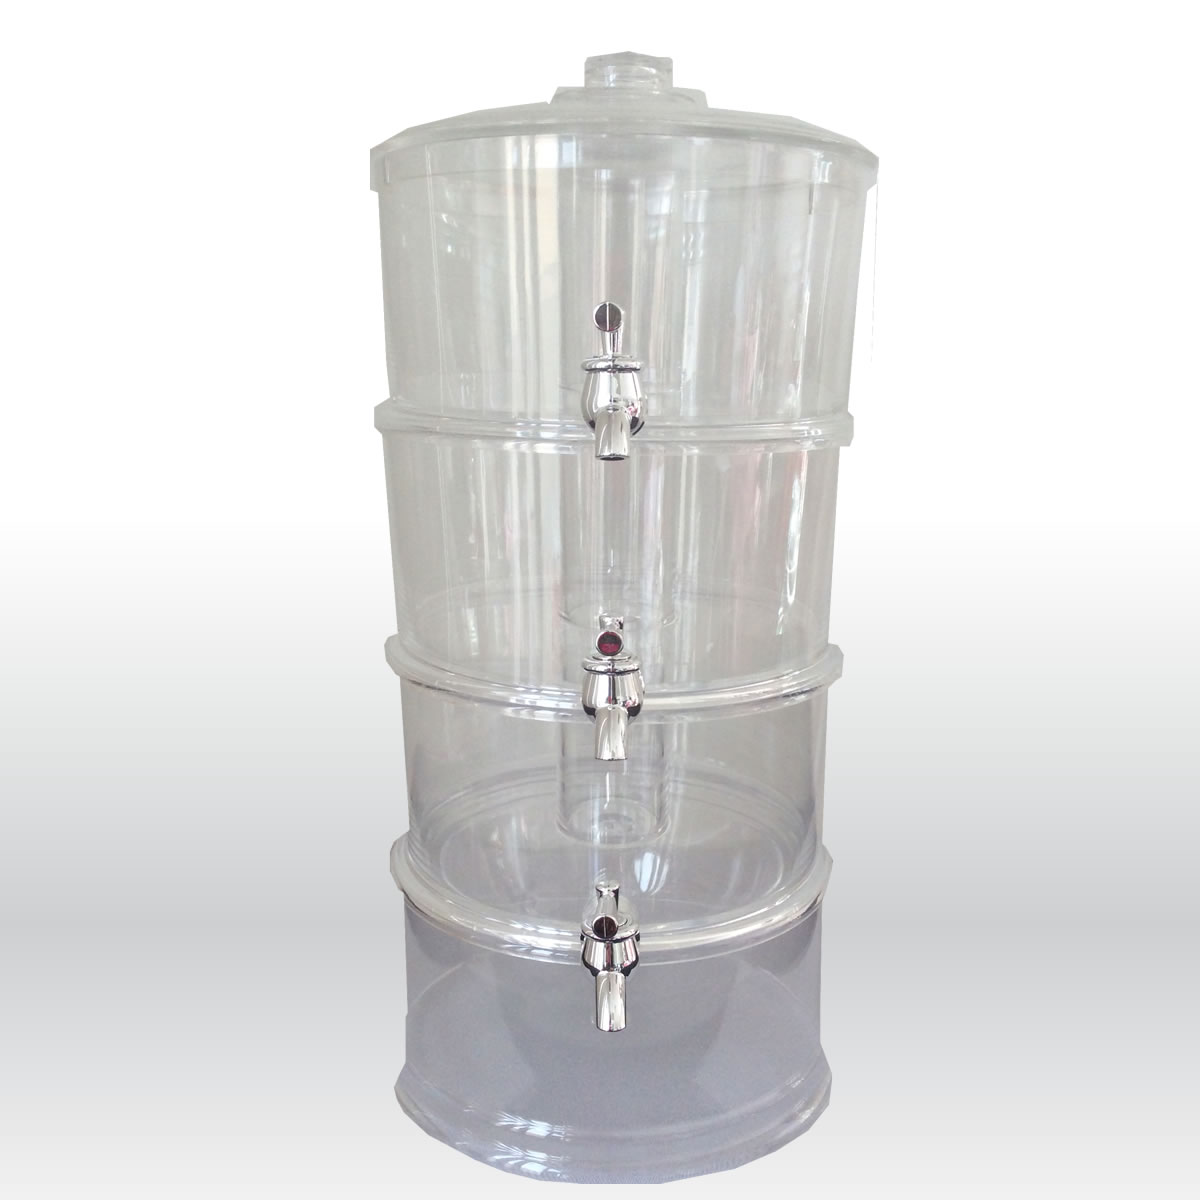 3 Tier Beverage Dispenser 3-Tier Beverage Dispenser - The Party Centre